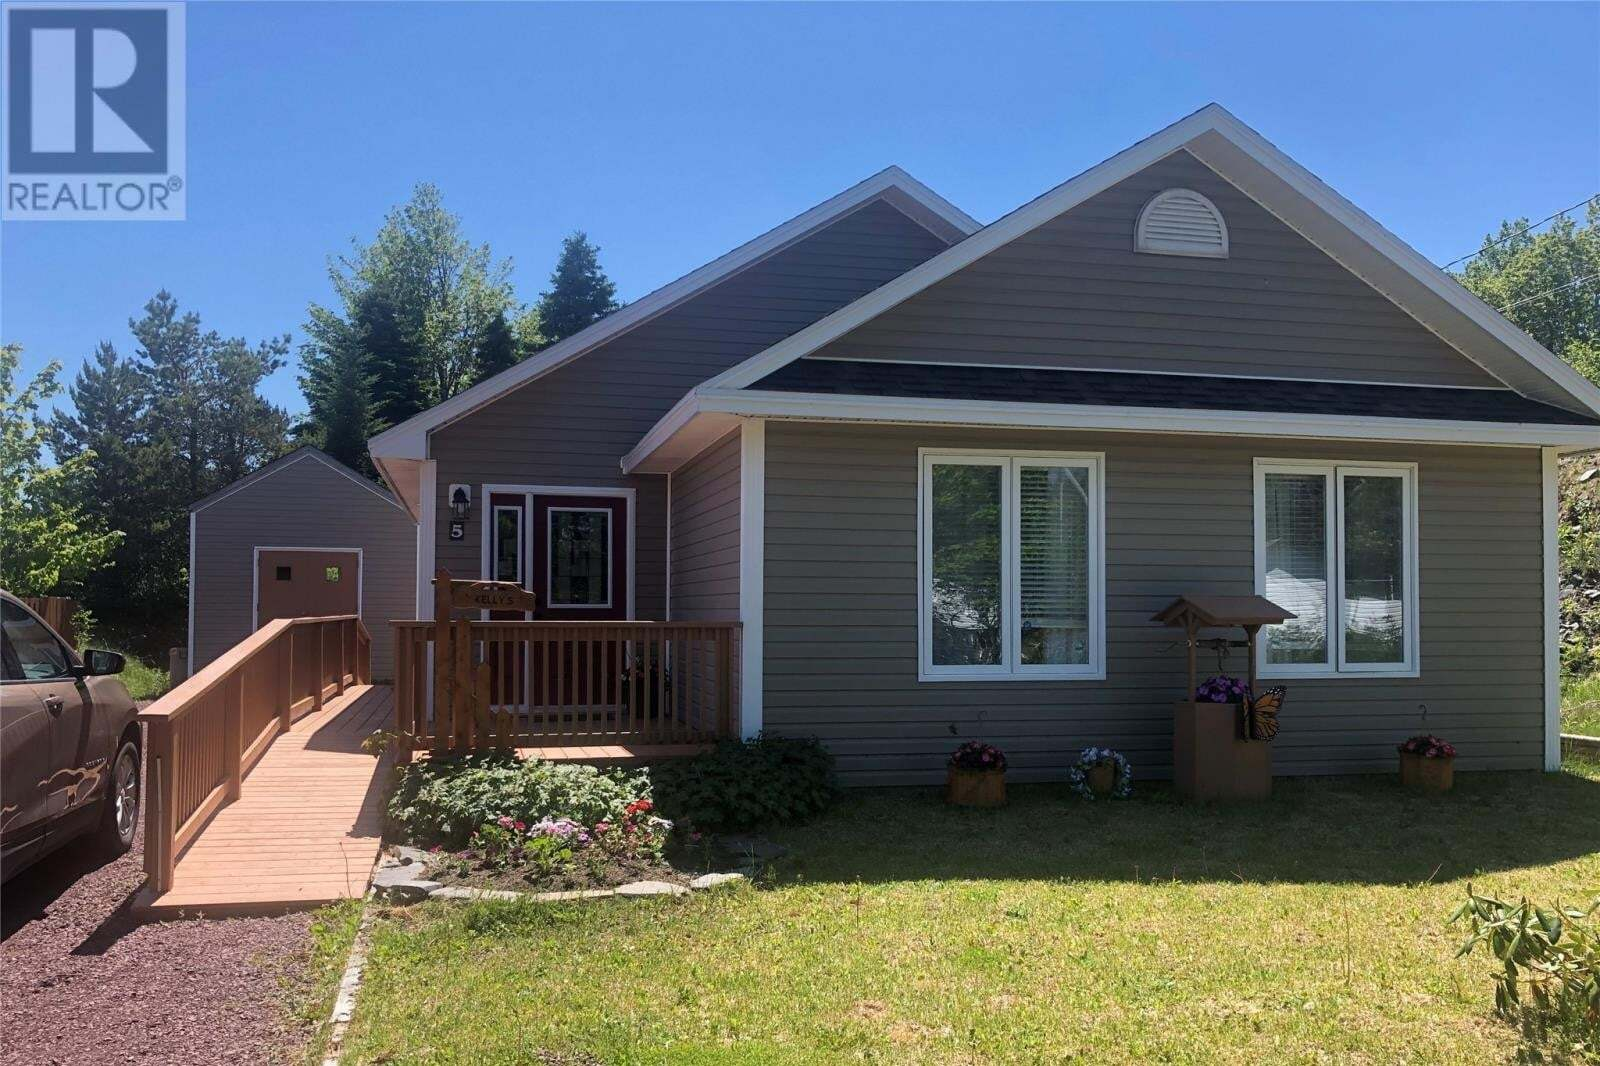 House for sale at 5 Frenchs Rd Bay Roberts Newfoundland - MLS: 1216892